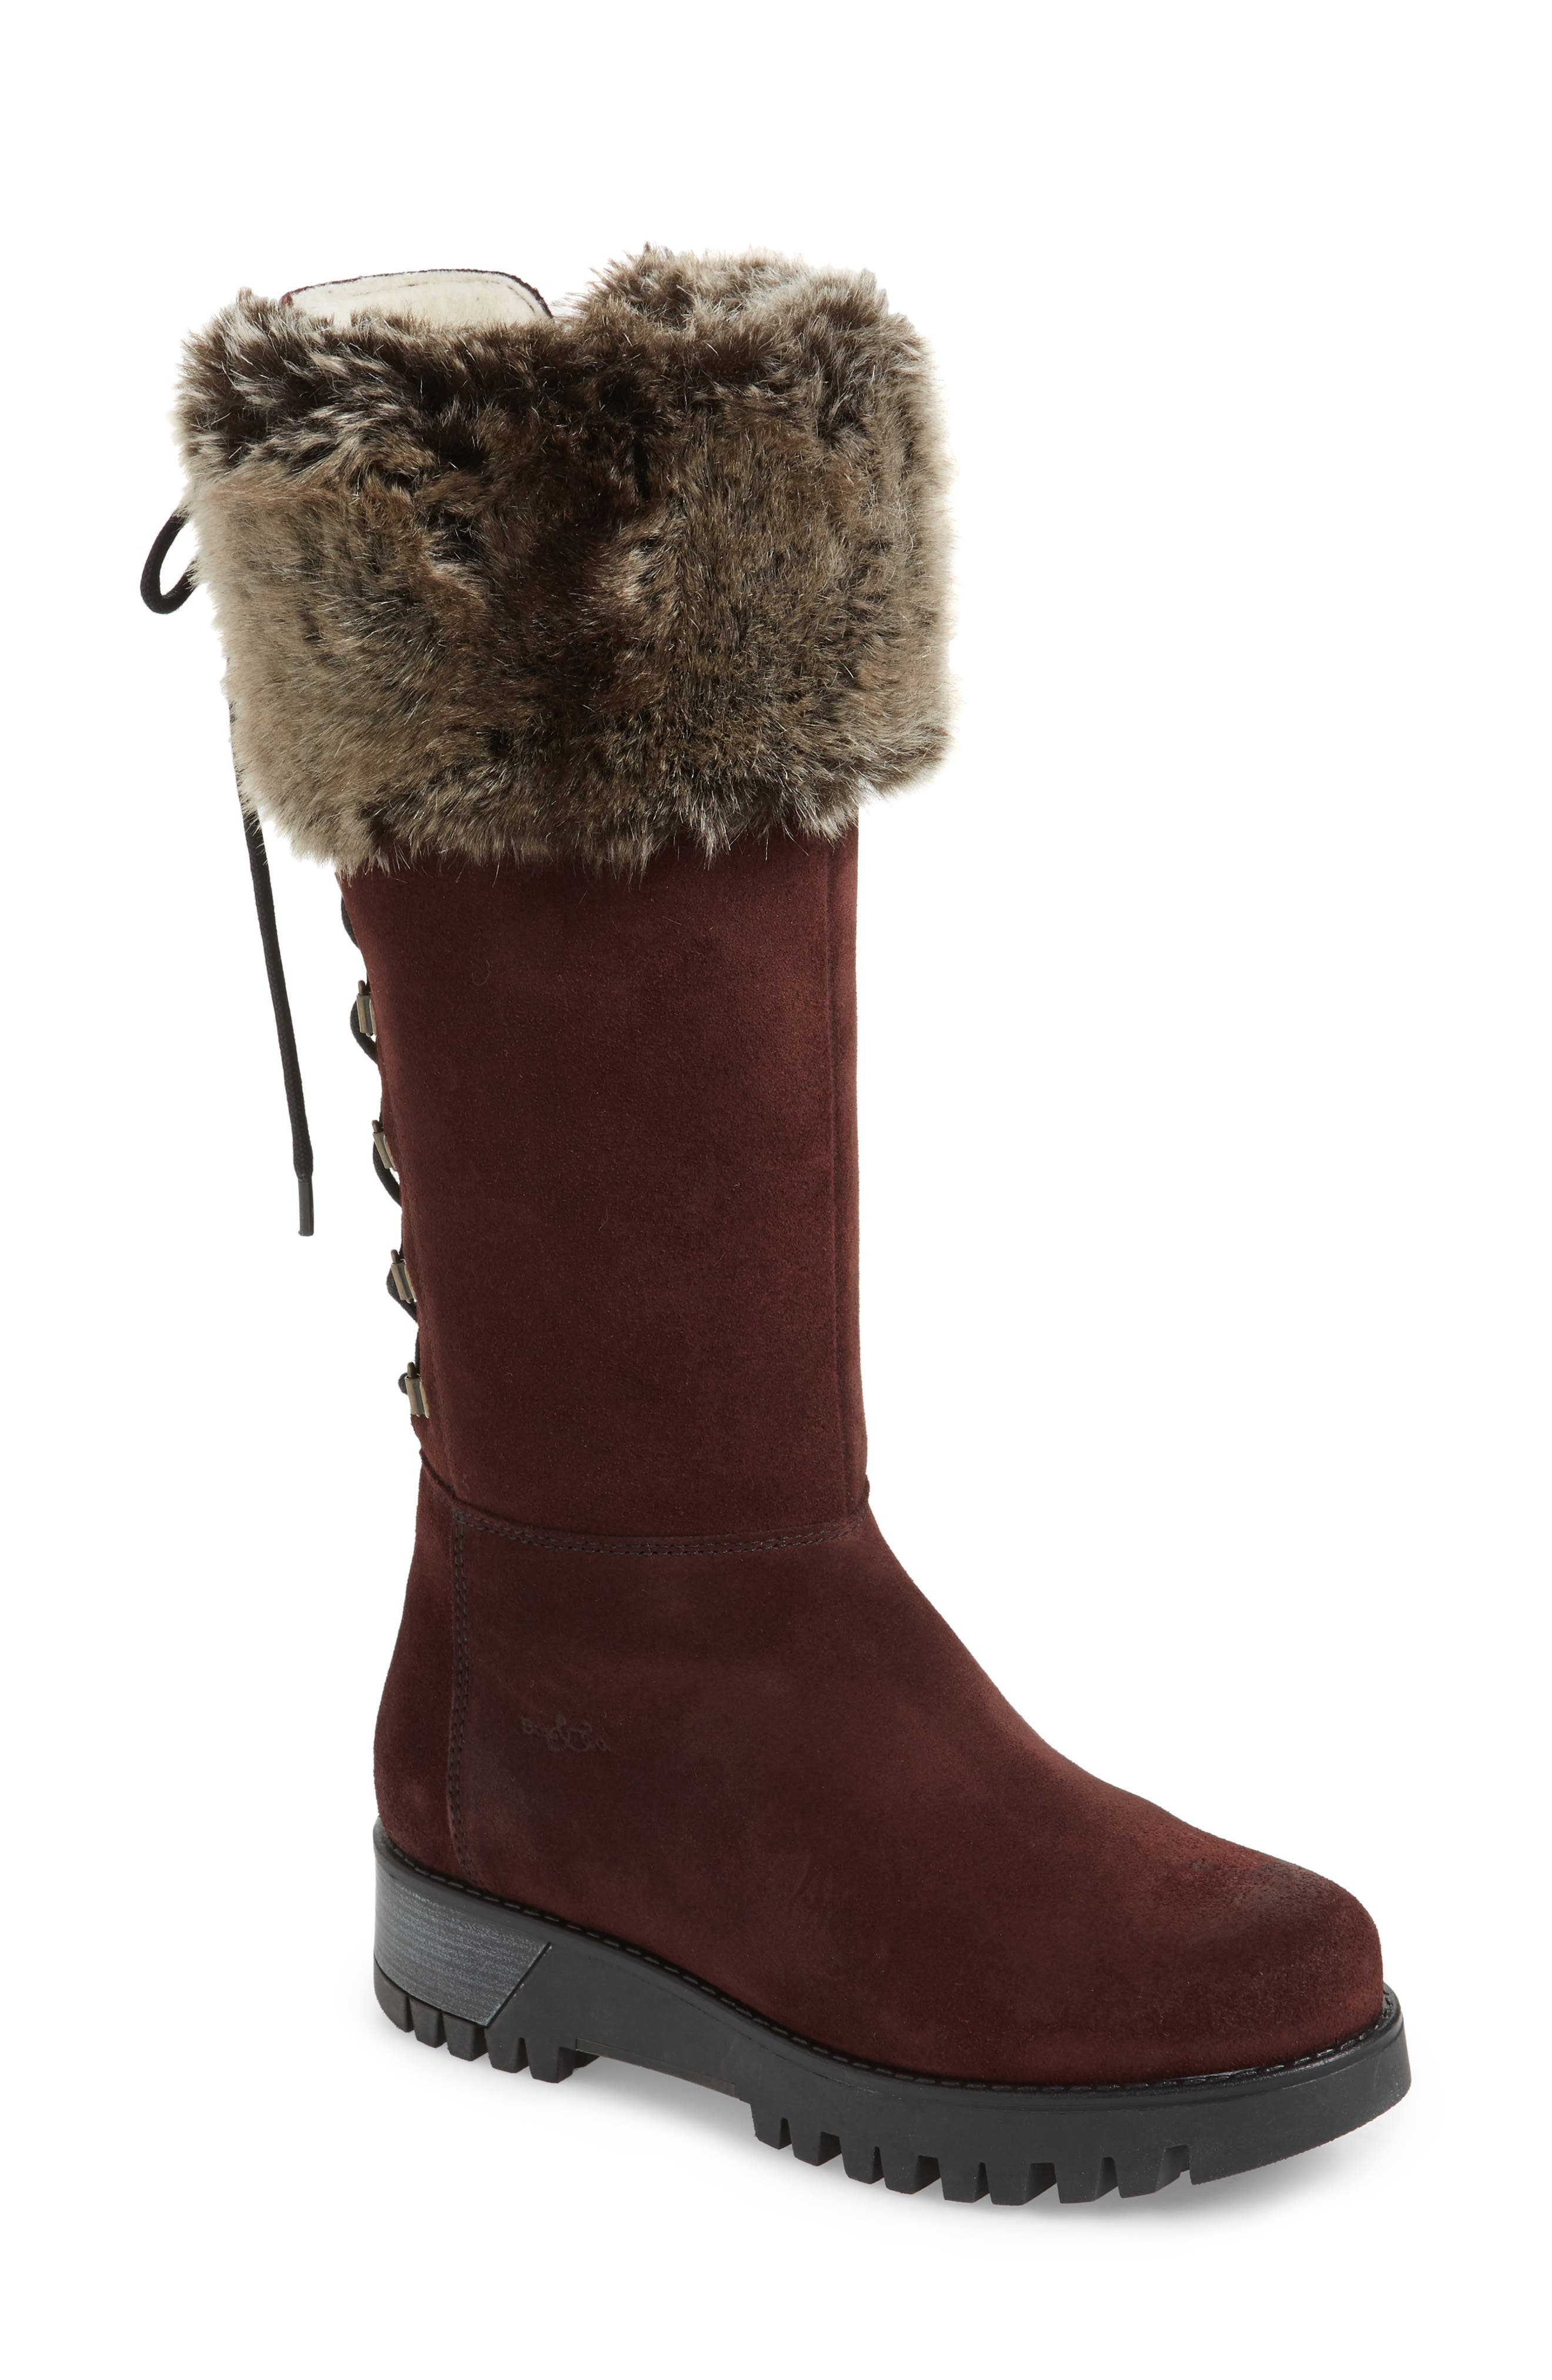 Graham Waterproof Winter Boot with Faux Fur Cuff,                         Main,                         color, Wine Suede